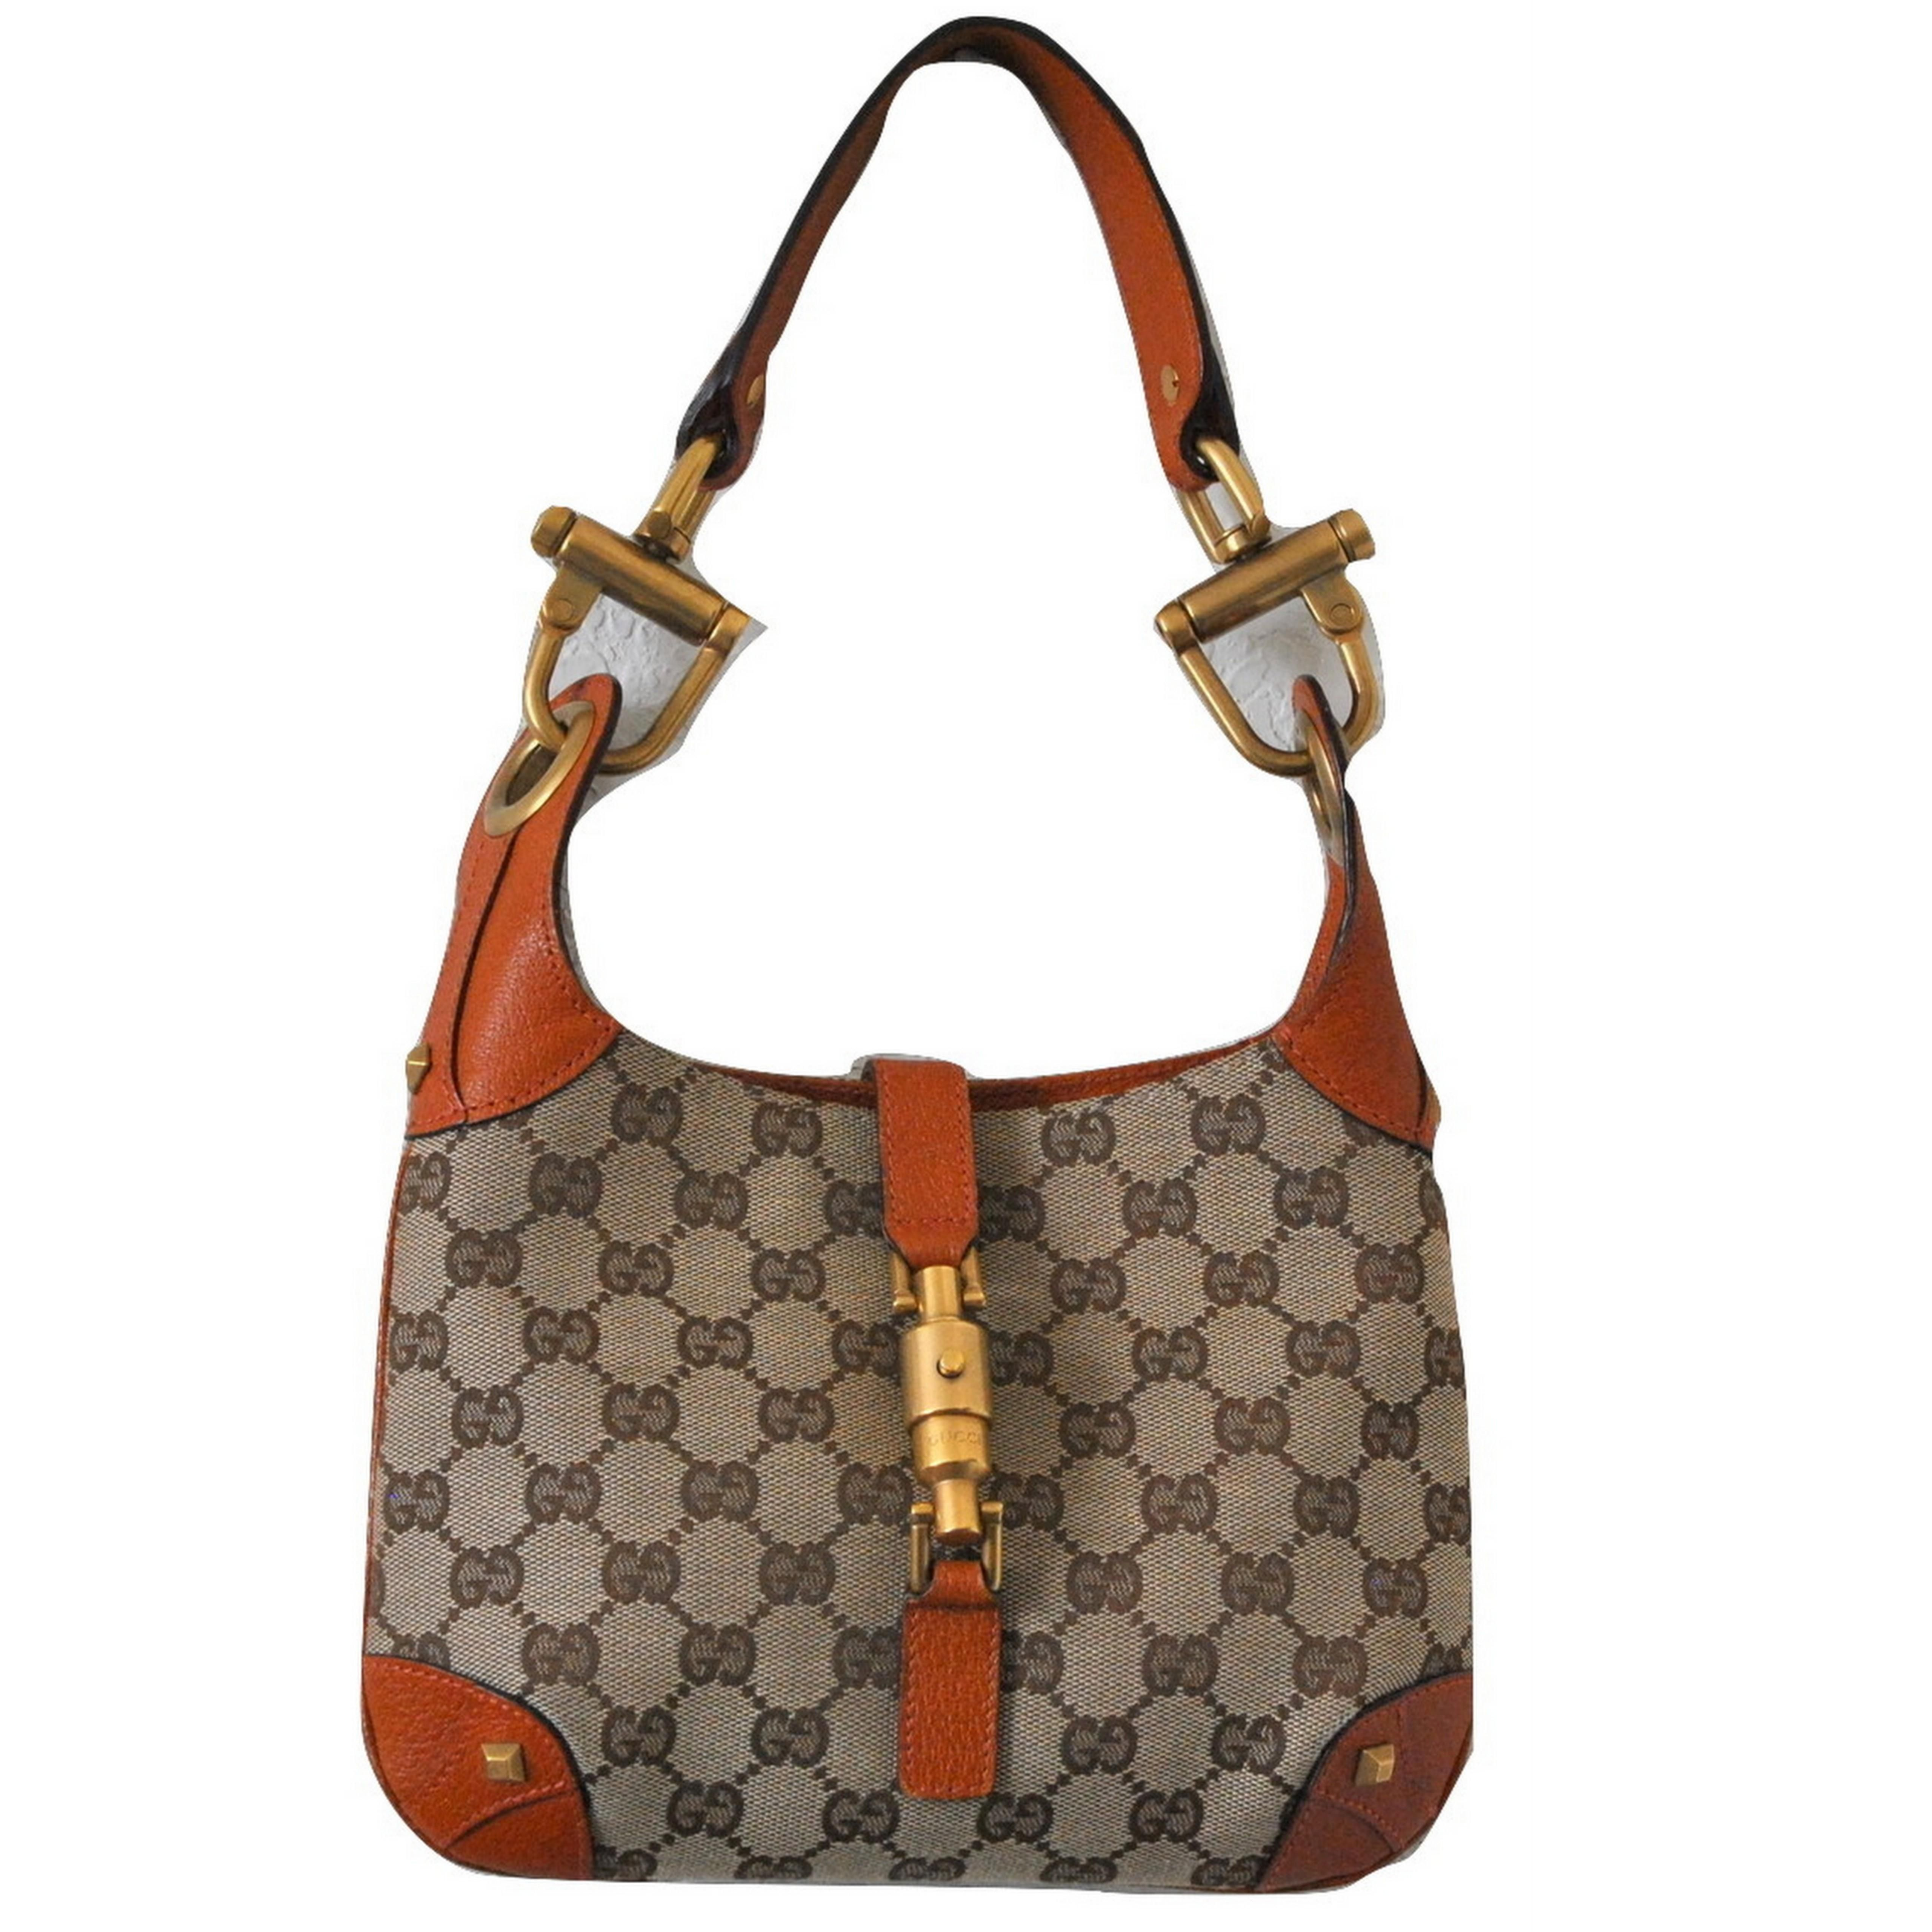 02b9f215d Guaranteed authentic Gucci hobo bags up to 70% off. Tradesy is trusted for  authentic new and pre-owned Gucci - Safe shipping and easy returns.